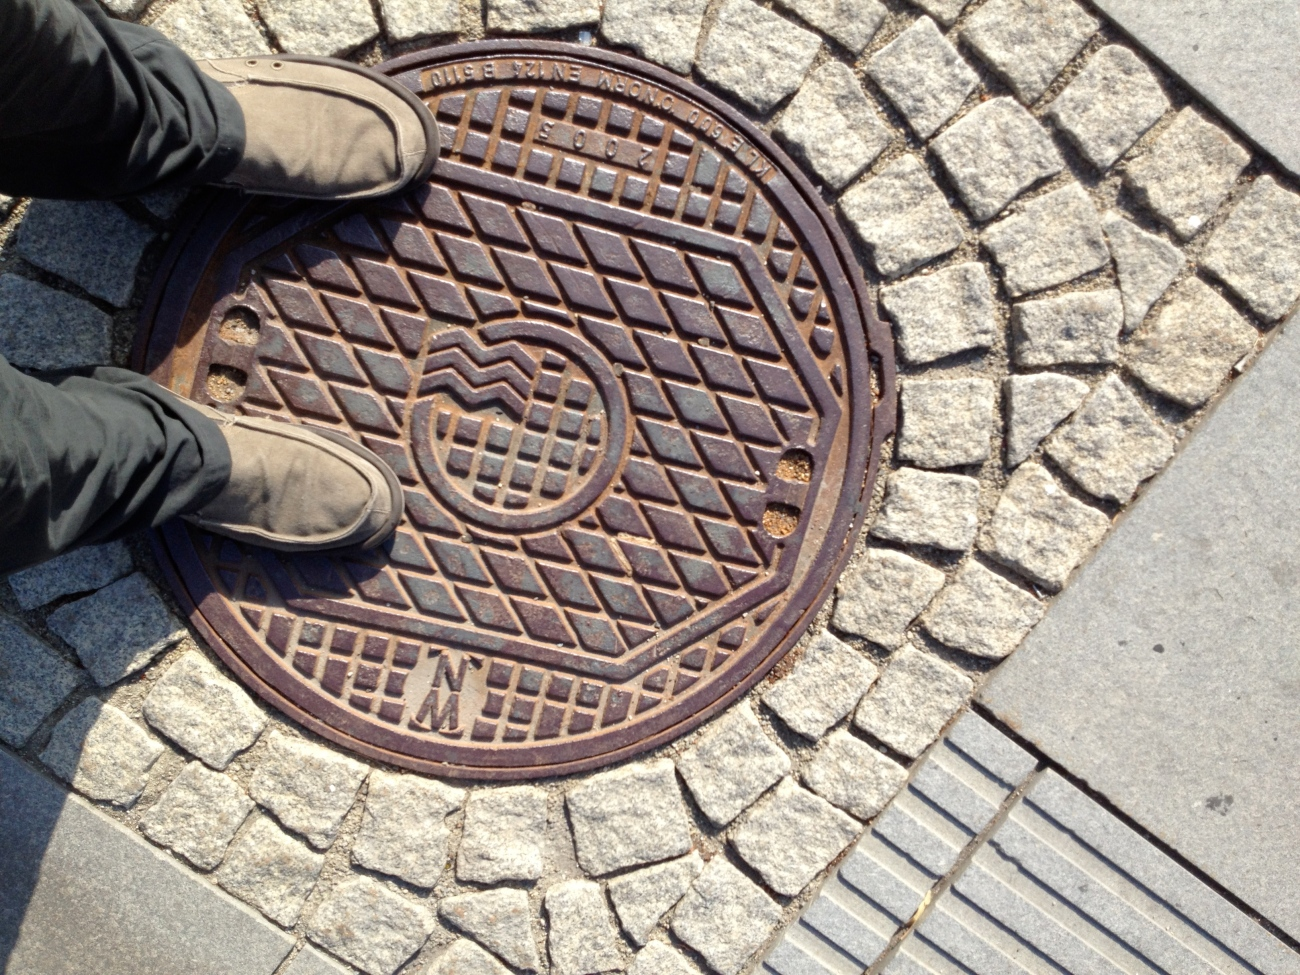 Be ashamed Vienna! I want to see some better manhole covers when I come back next time.